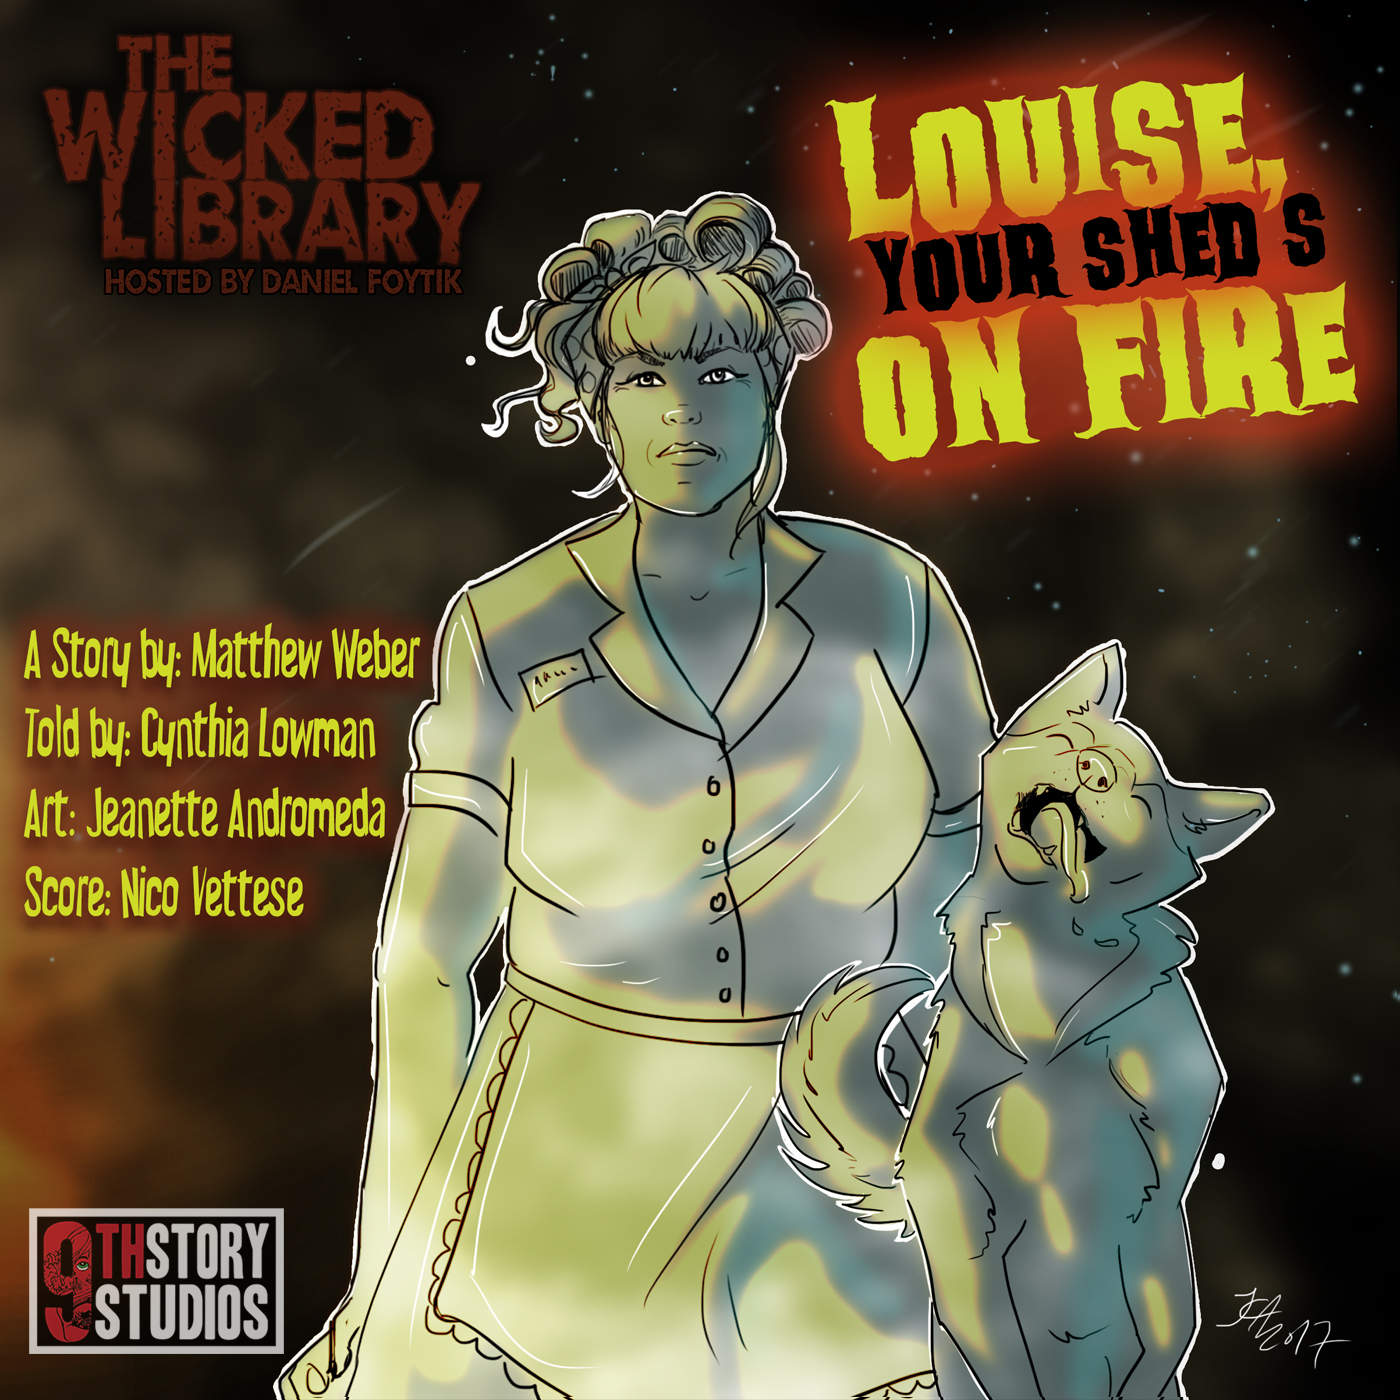 728: Louise, Your Shed's on Fire – by Matthew Weber